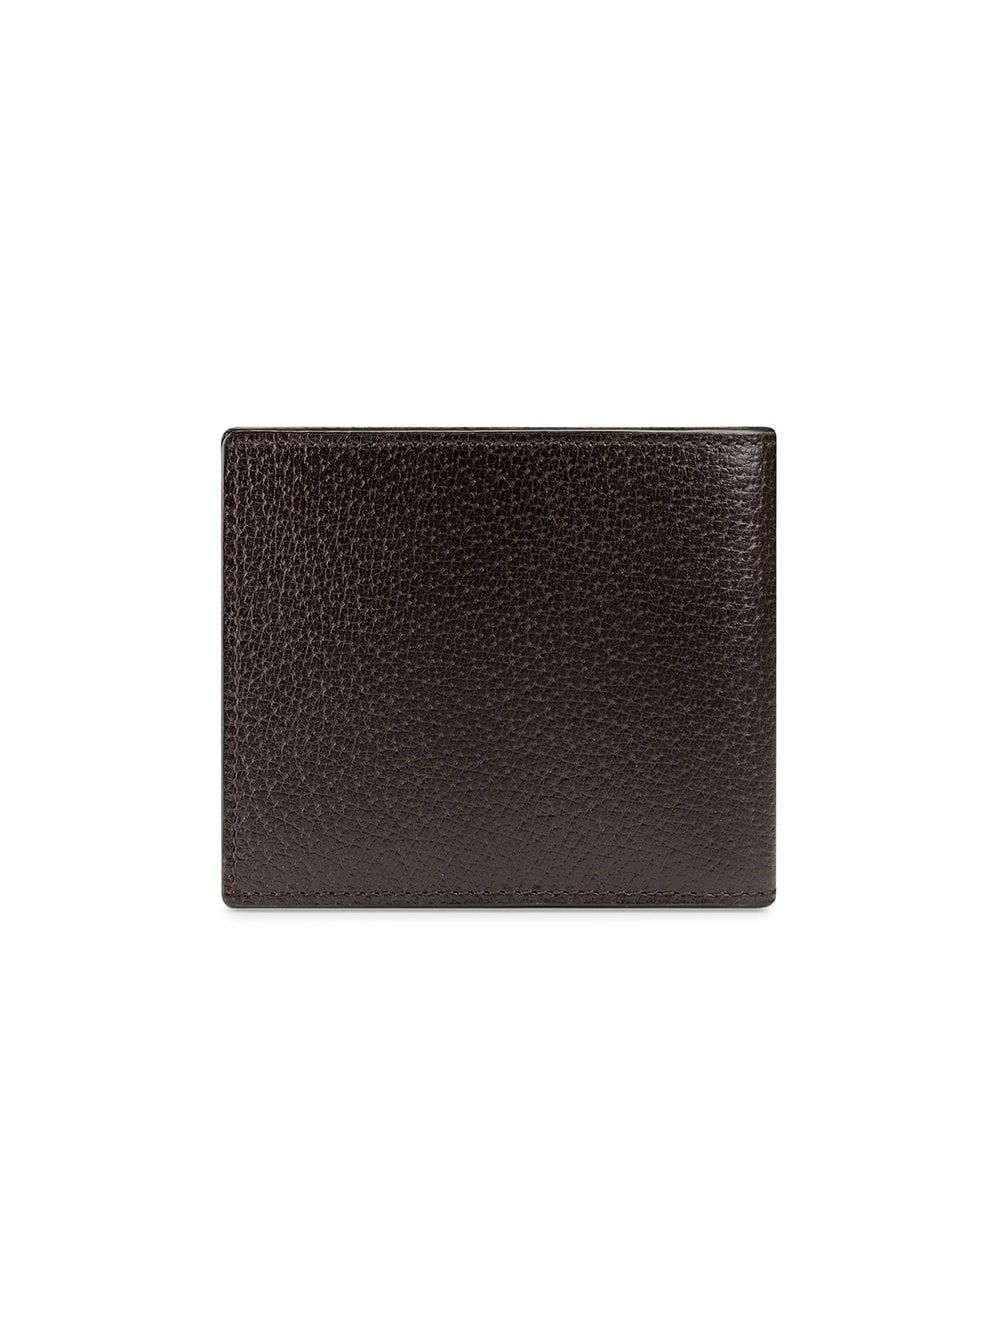 db1b8a121a41a Gucci GG Marmont Leather Bi-fold Wallet in Brown for Men - Lyst